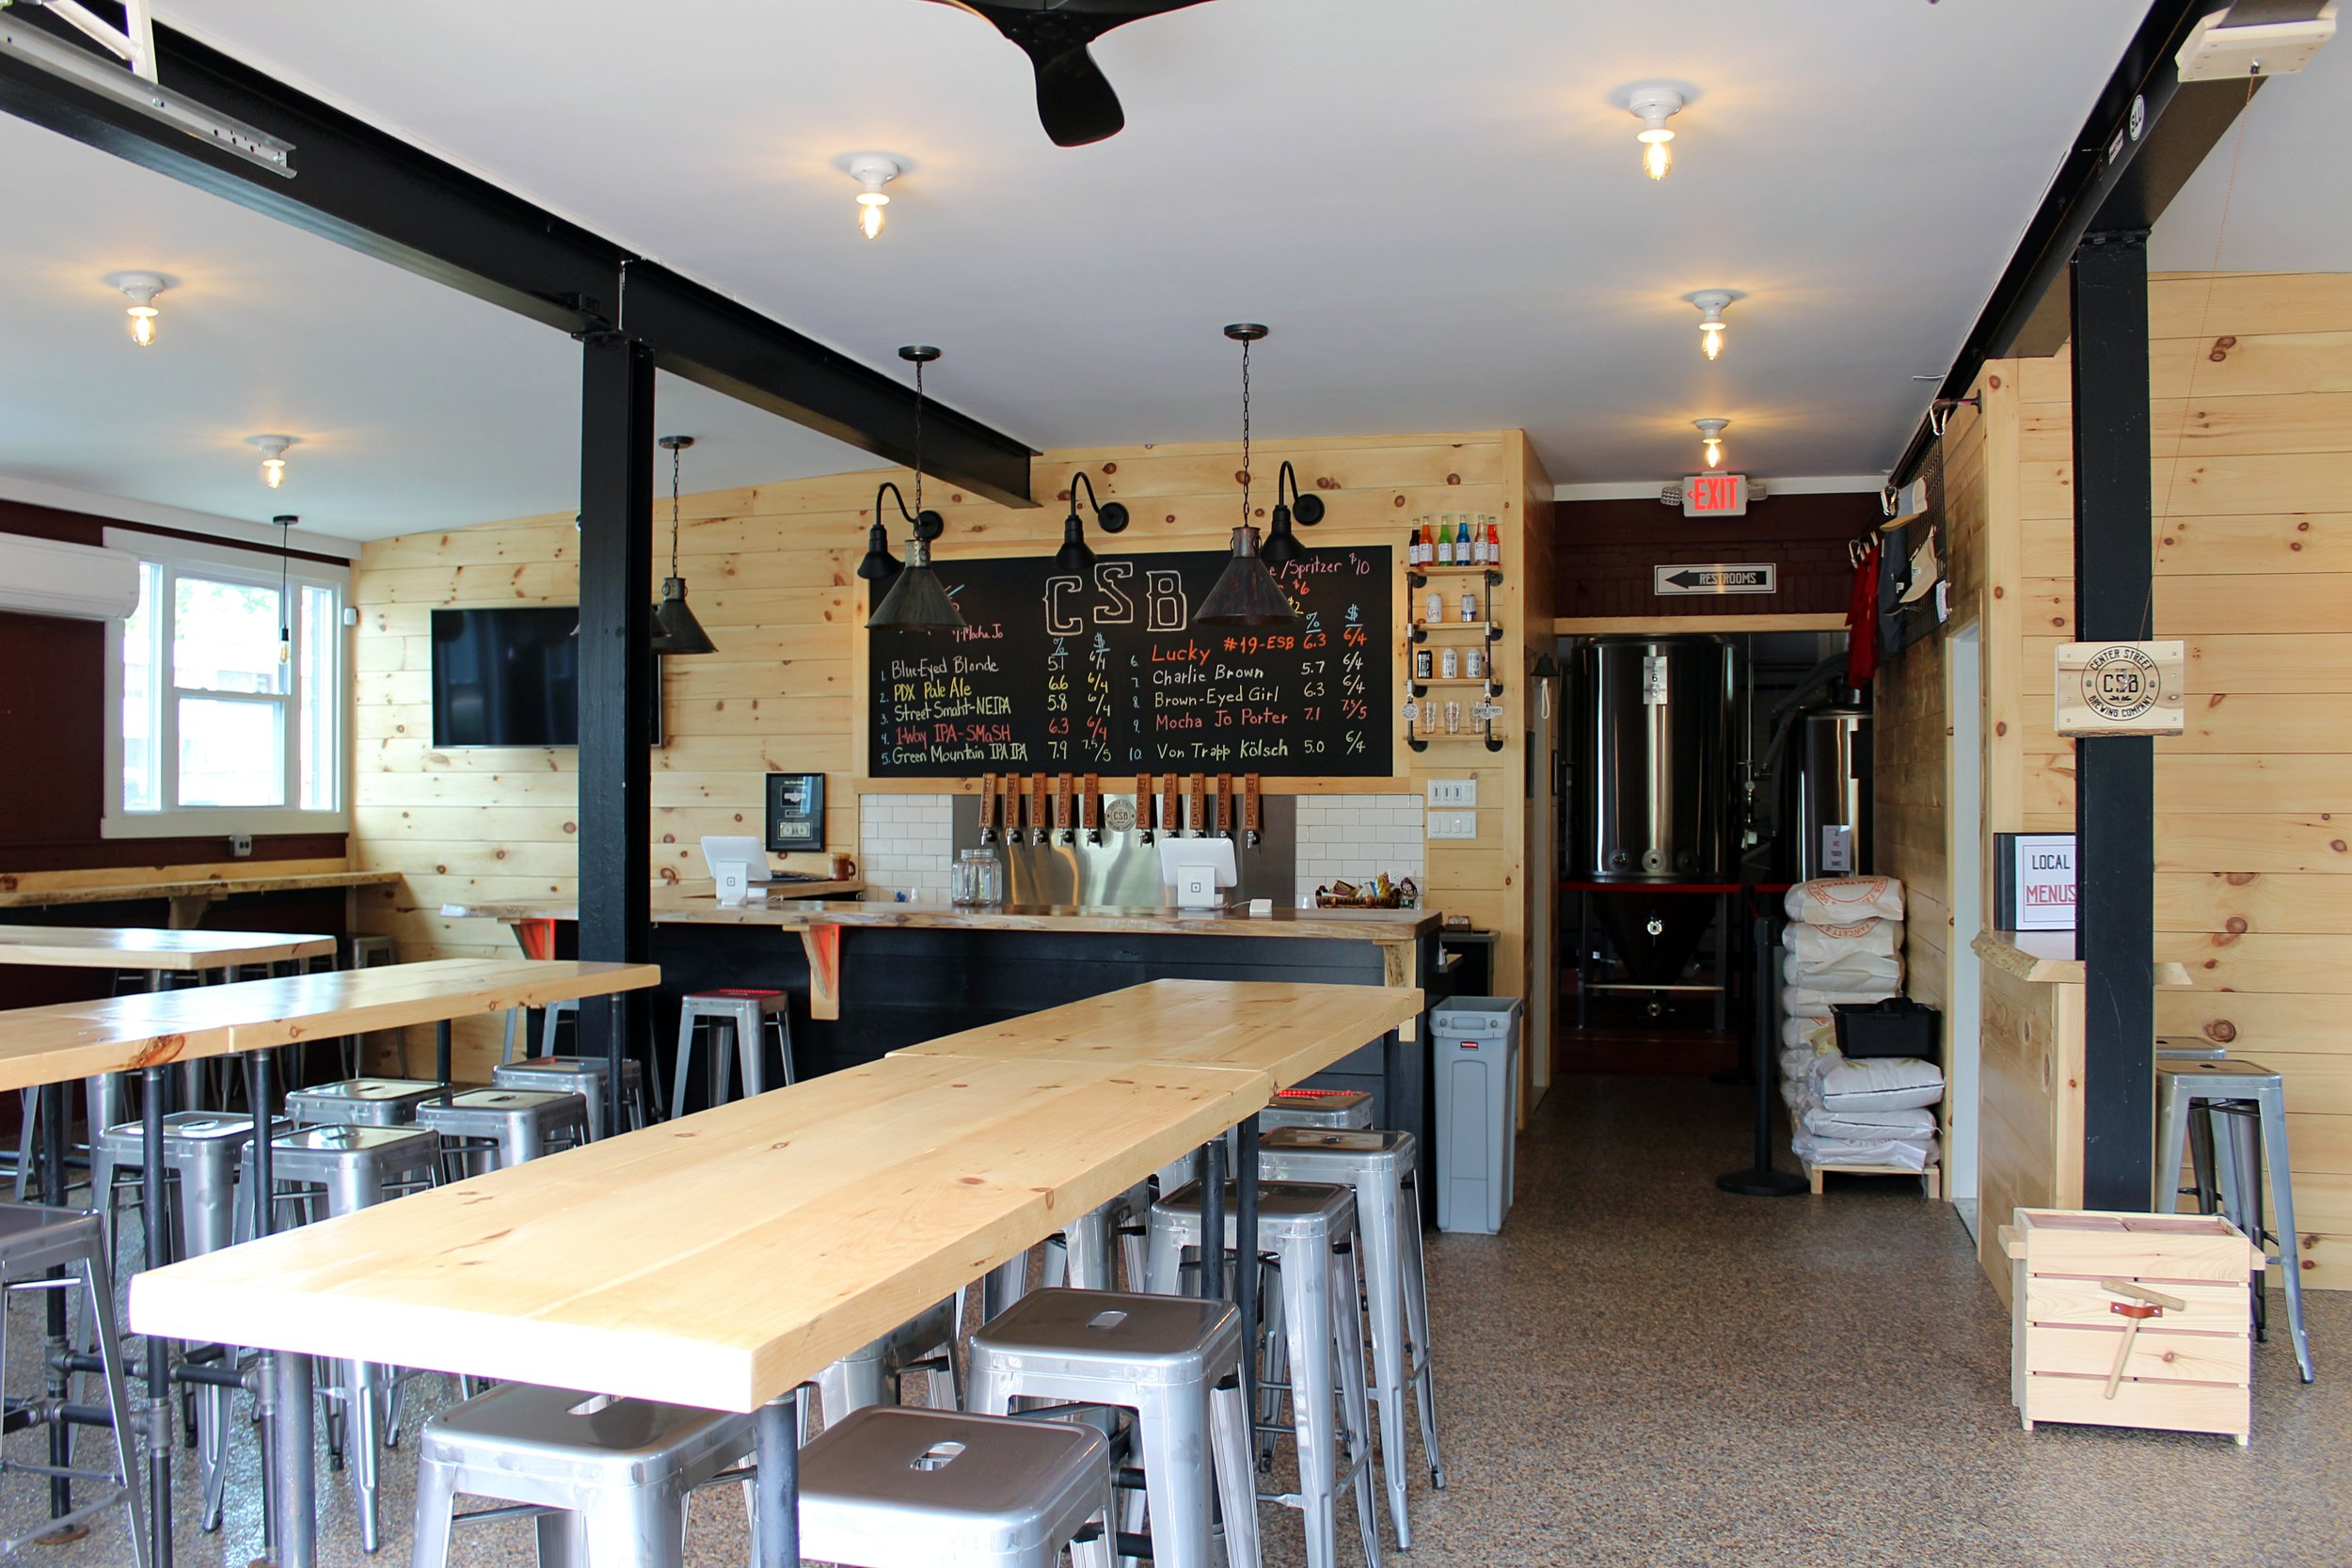 The goal of our taproom was to create a warm and inviting environment that replicates the vibe of a New England barn; a great place to enjoy the company of friends